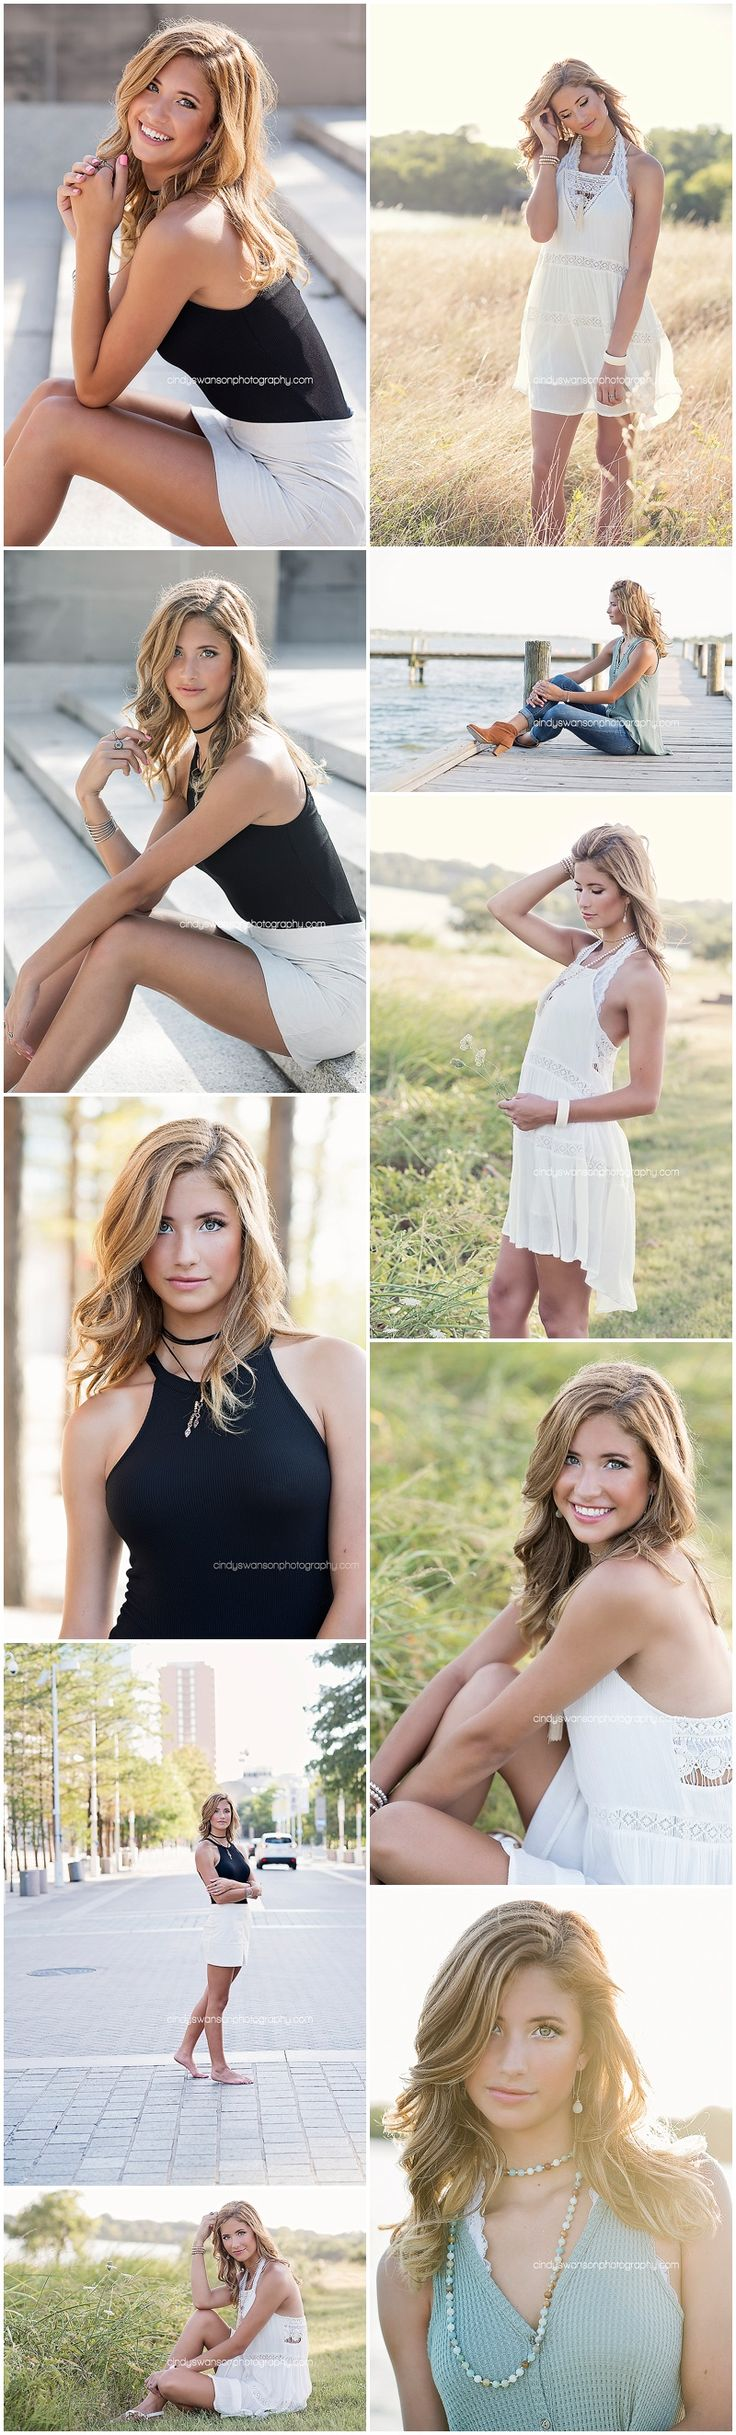 Senior girl portrait posing ideas   Dallas senior photographer Cindy Swanson Photography